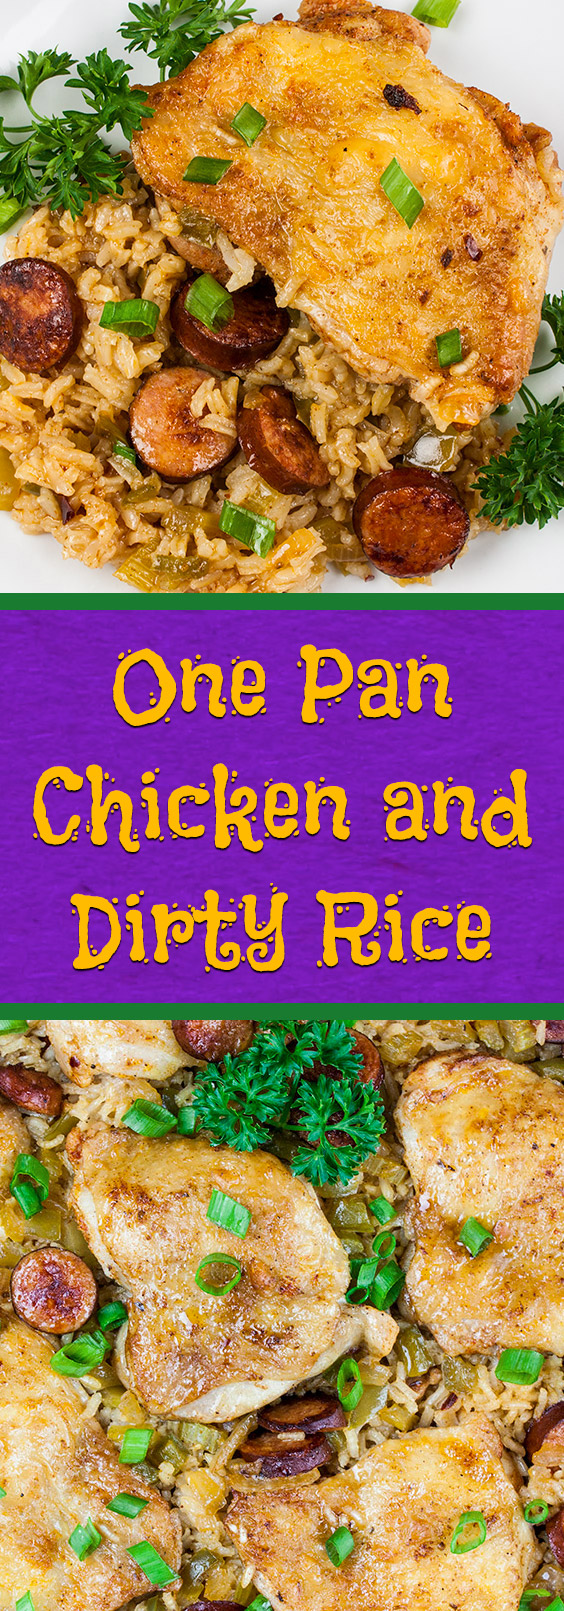 One Pan Chicken and Dirty Rice - Add a little Cajun spice to your dinner tonight! Spicy, creamy, delicious and ready in 30 minutes! #dinner #easy #recipe